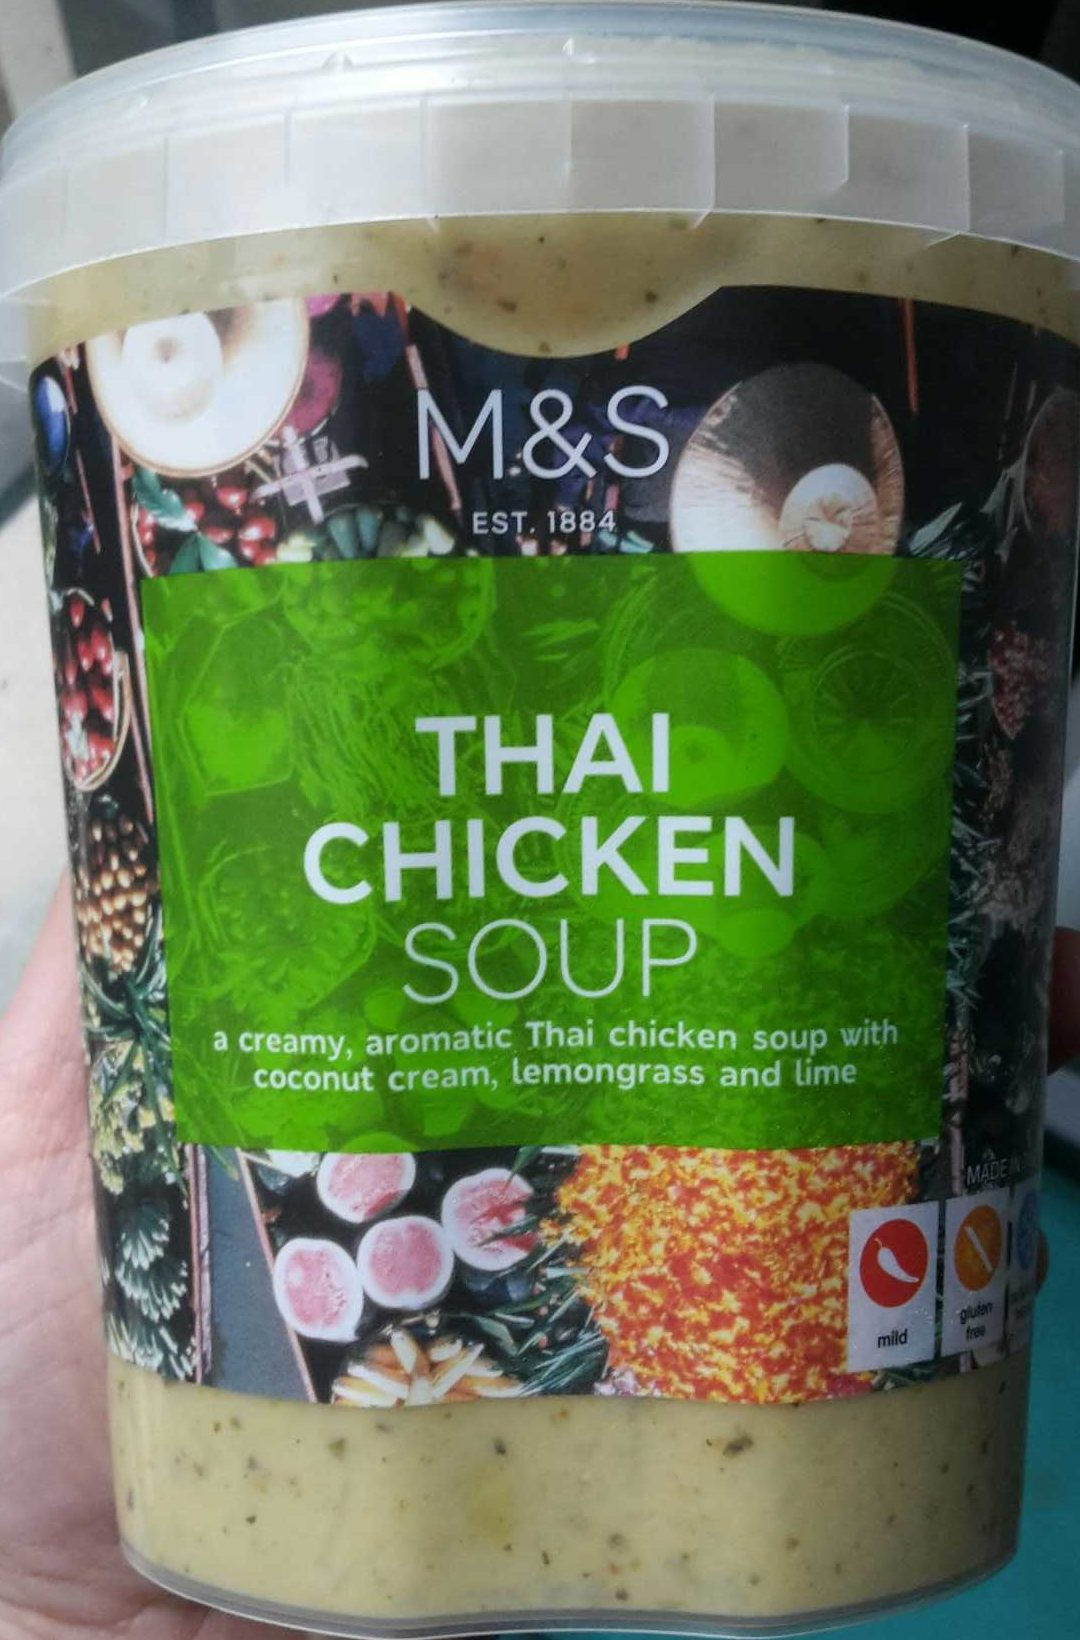 Thai Chicken Soup - Product - fr